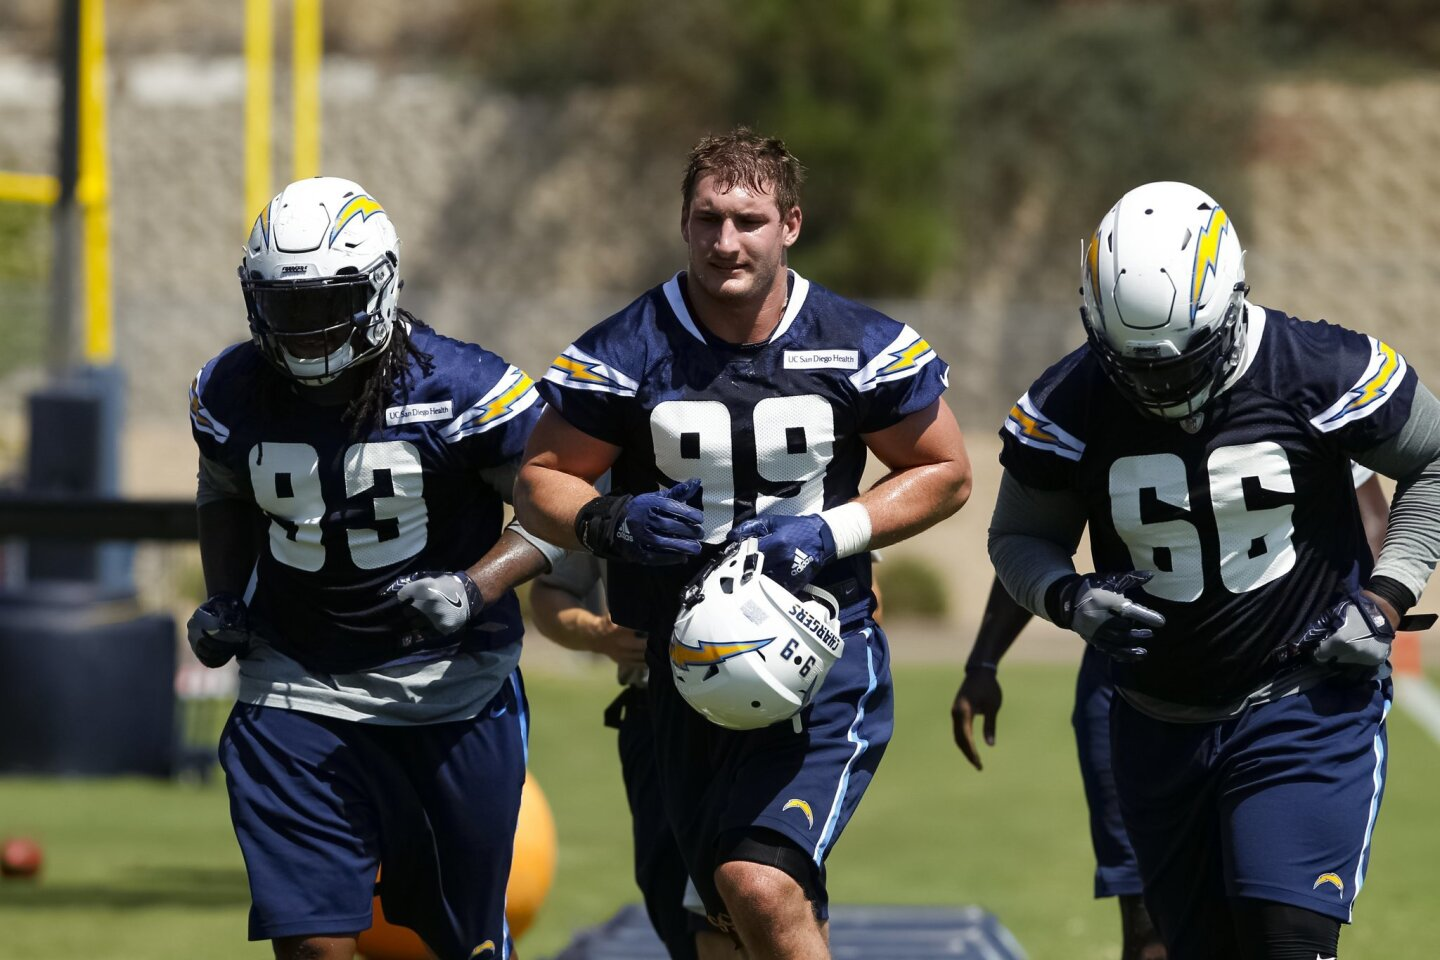 Joey Bosa's first team practice